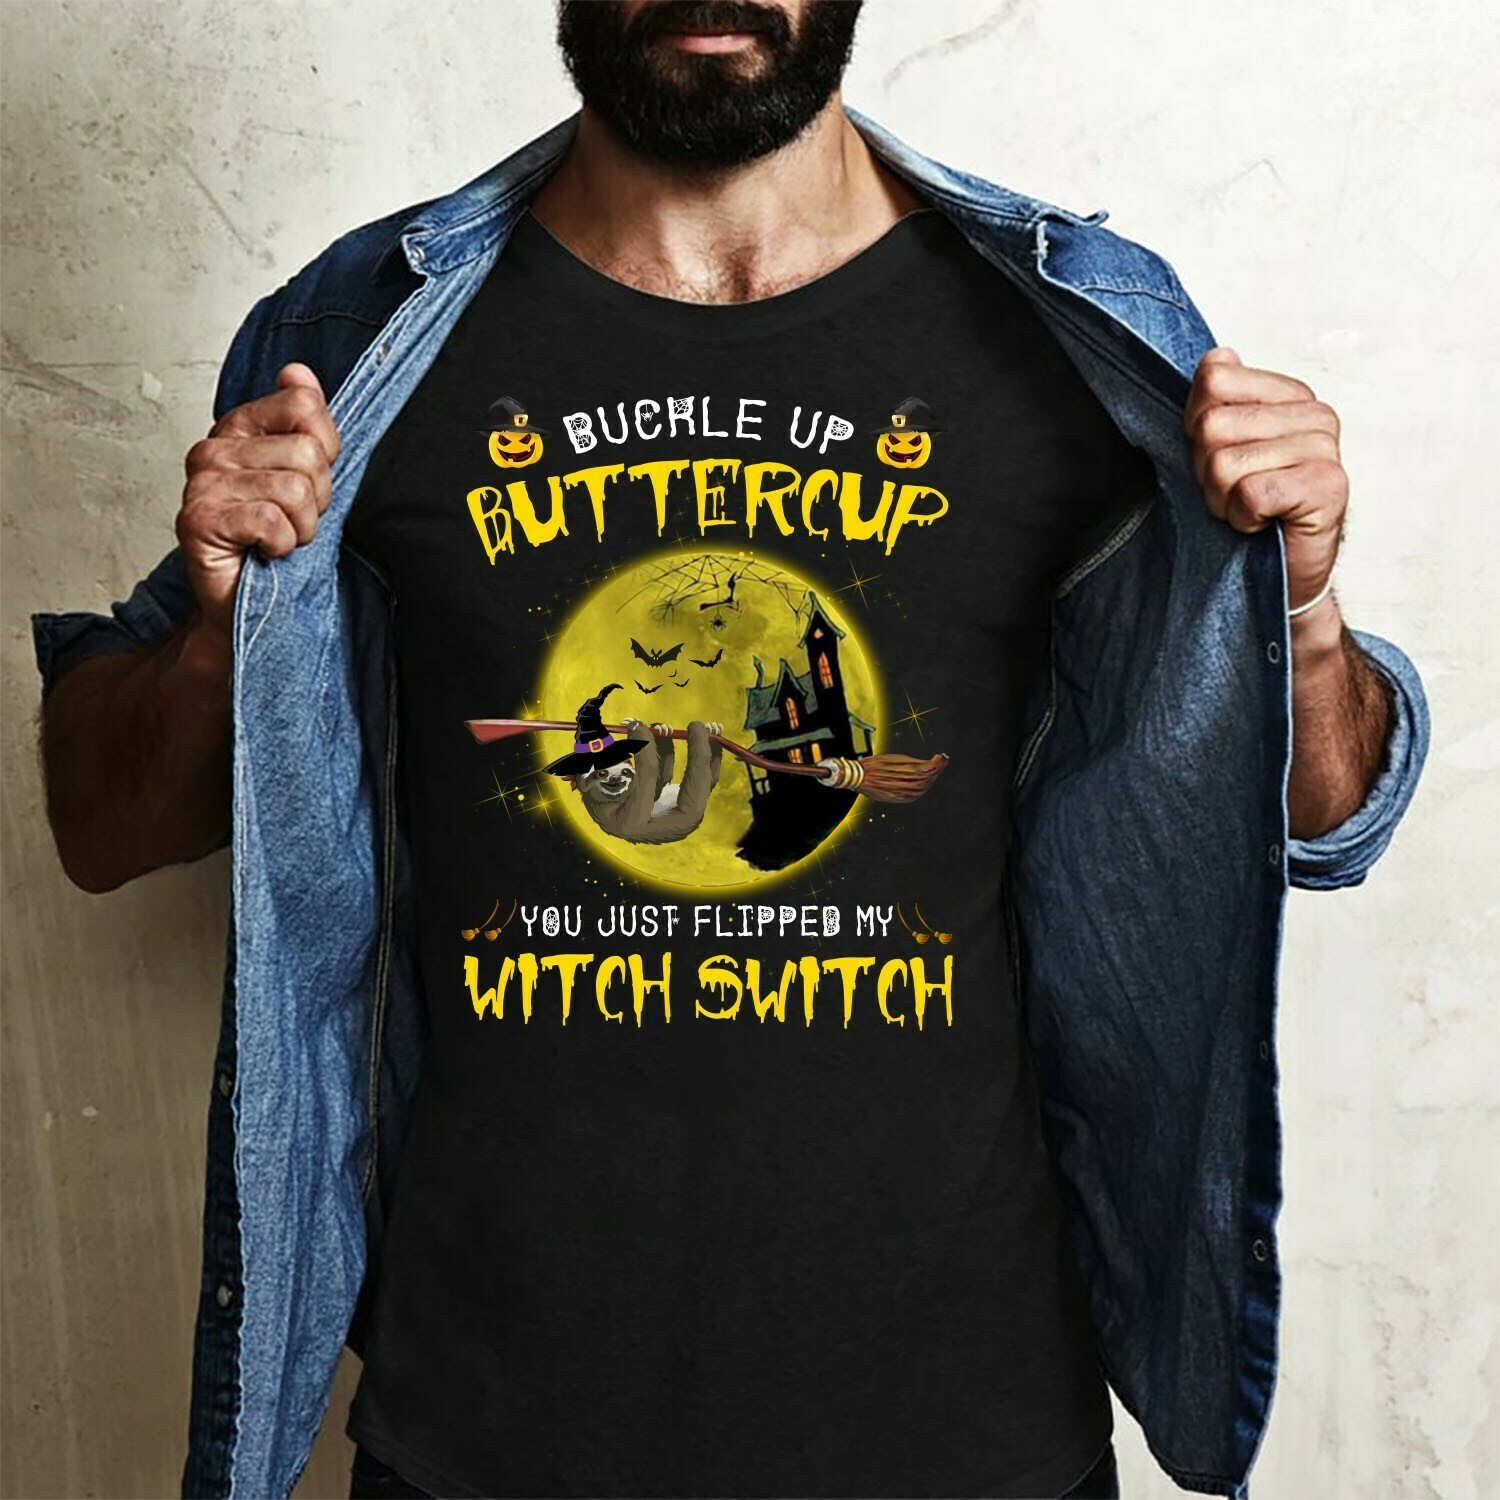 Sloth Buckle Up Buttercup You Just Flipped My Witch Switch gift Lovers Halloween Day Family Vacation Team Party Gifts T-Shirt Long Sleeve Sweatshirt Hoodie Jolly Family Gifts